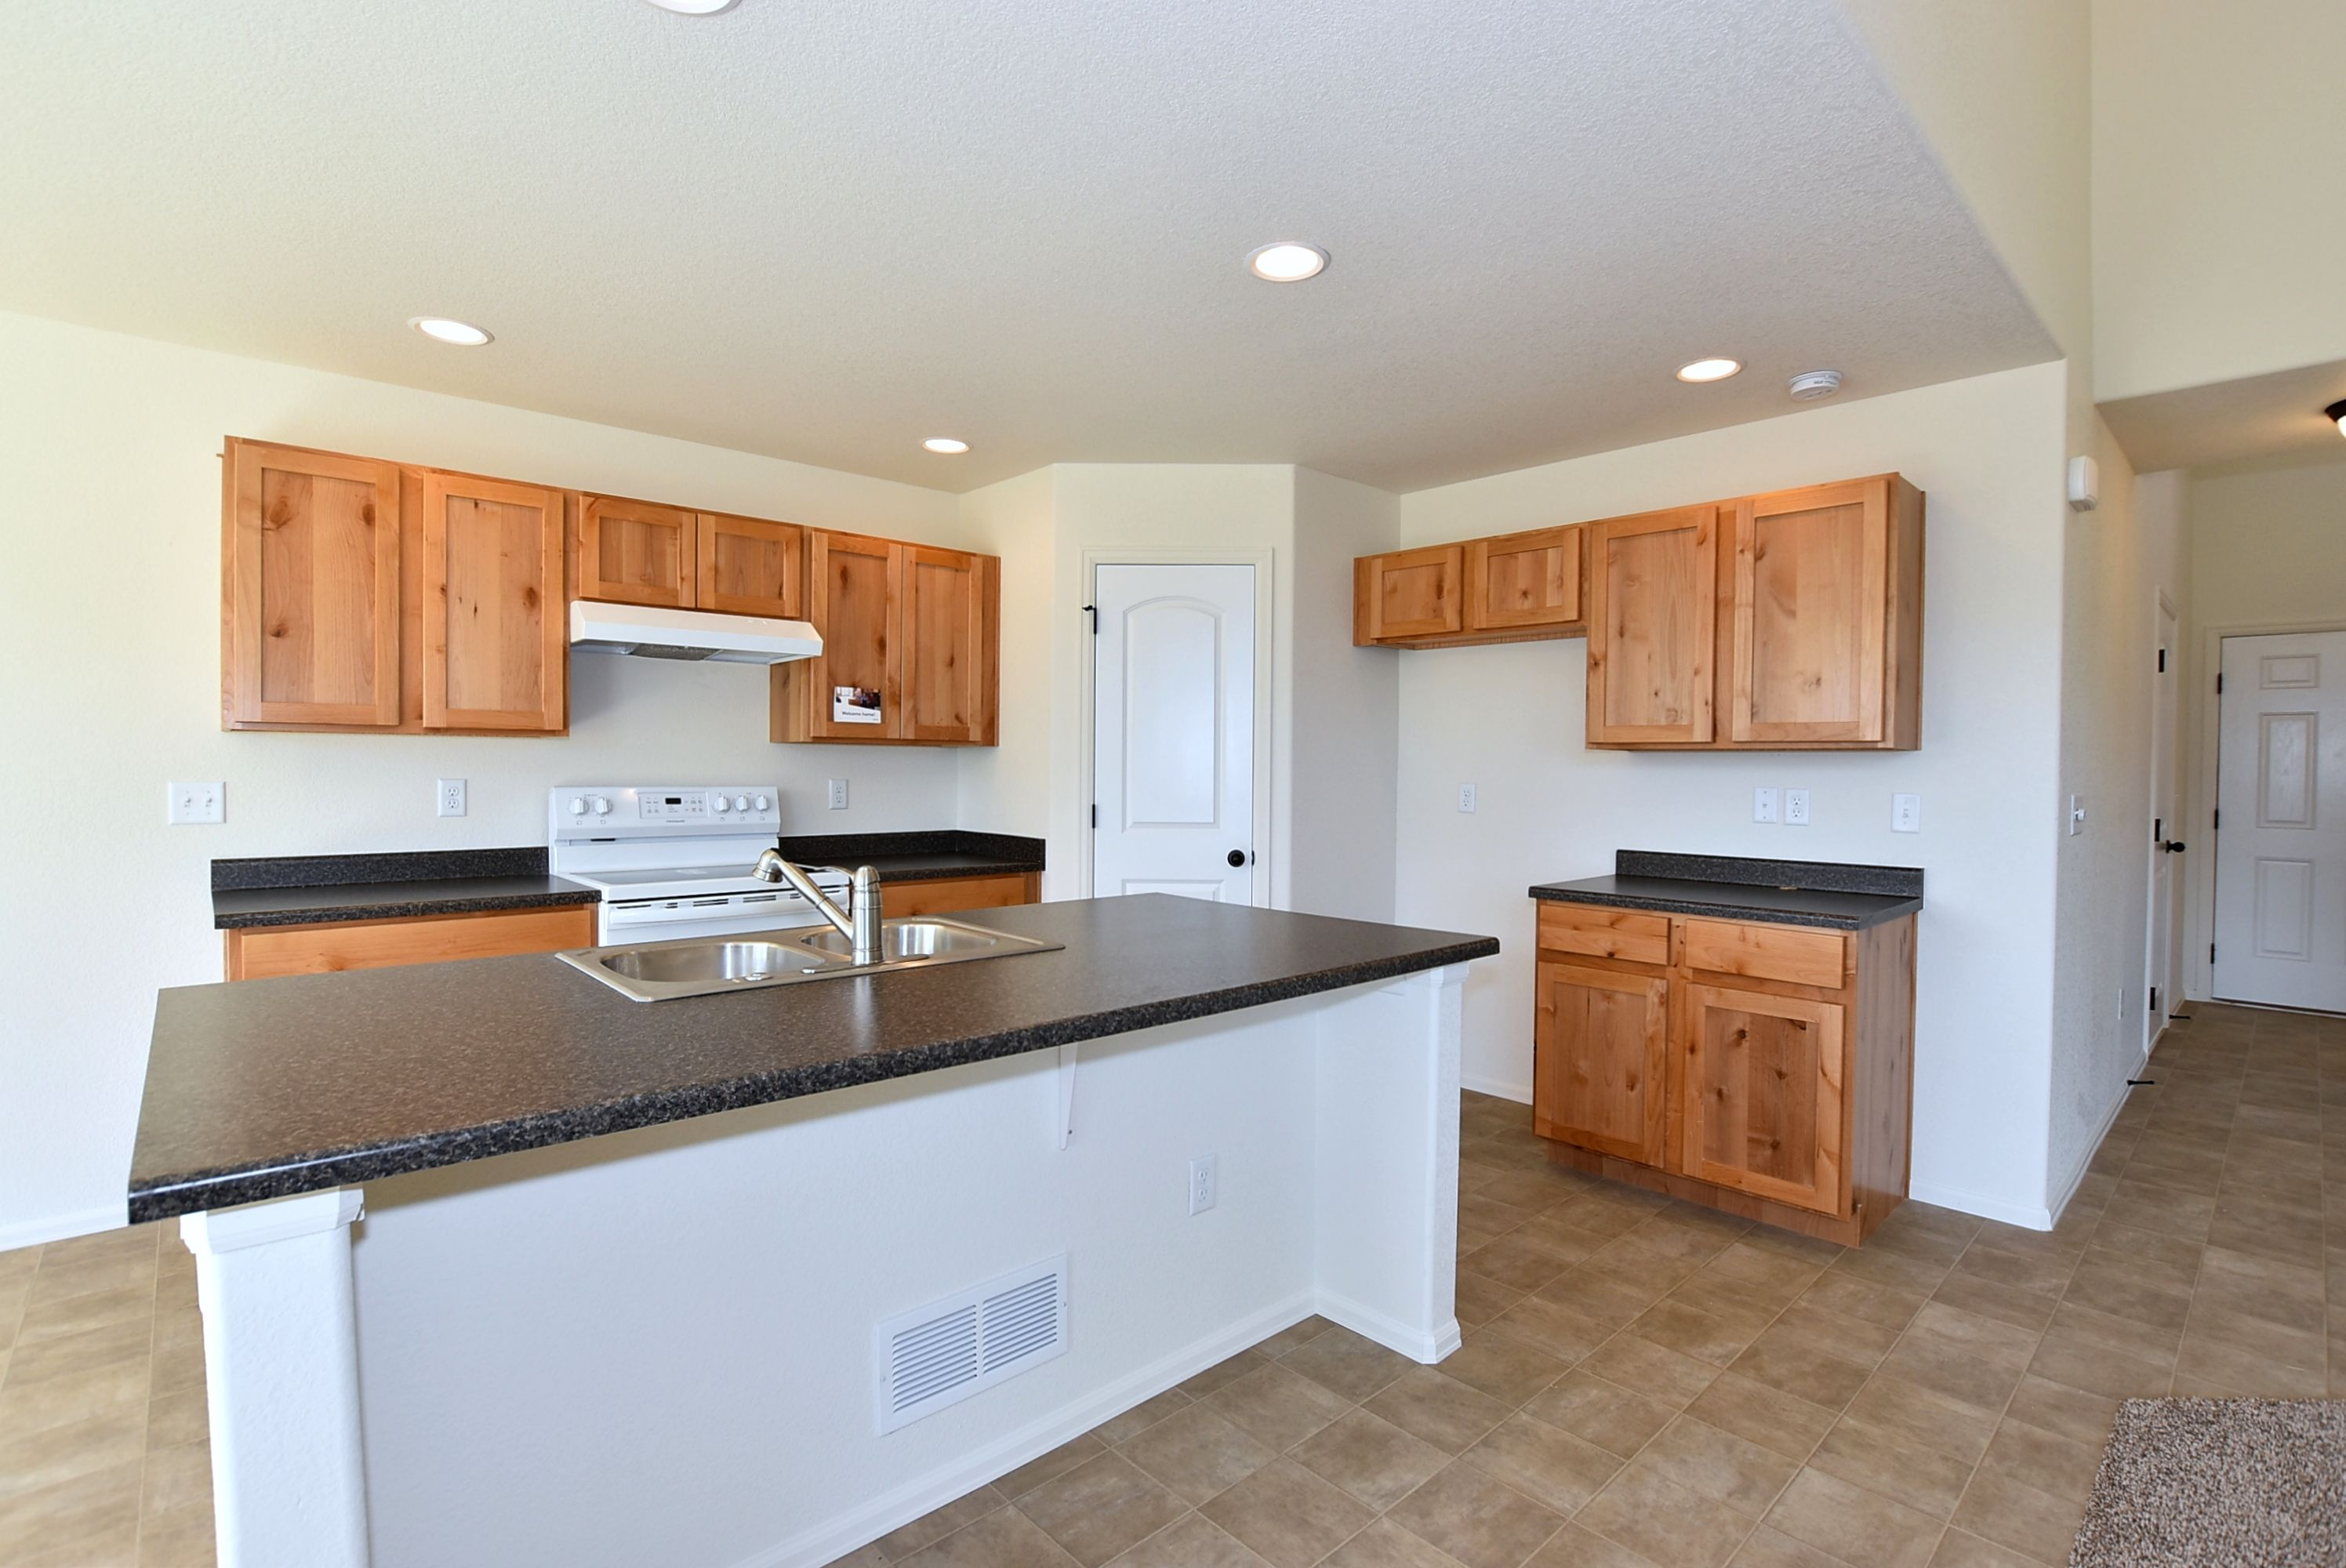 Kitchen featured in the New Jersey By Journey Homes in Greeley, CO